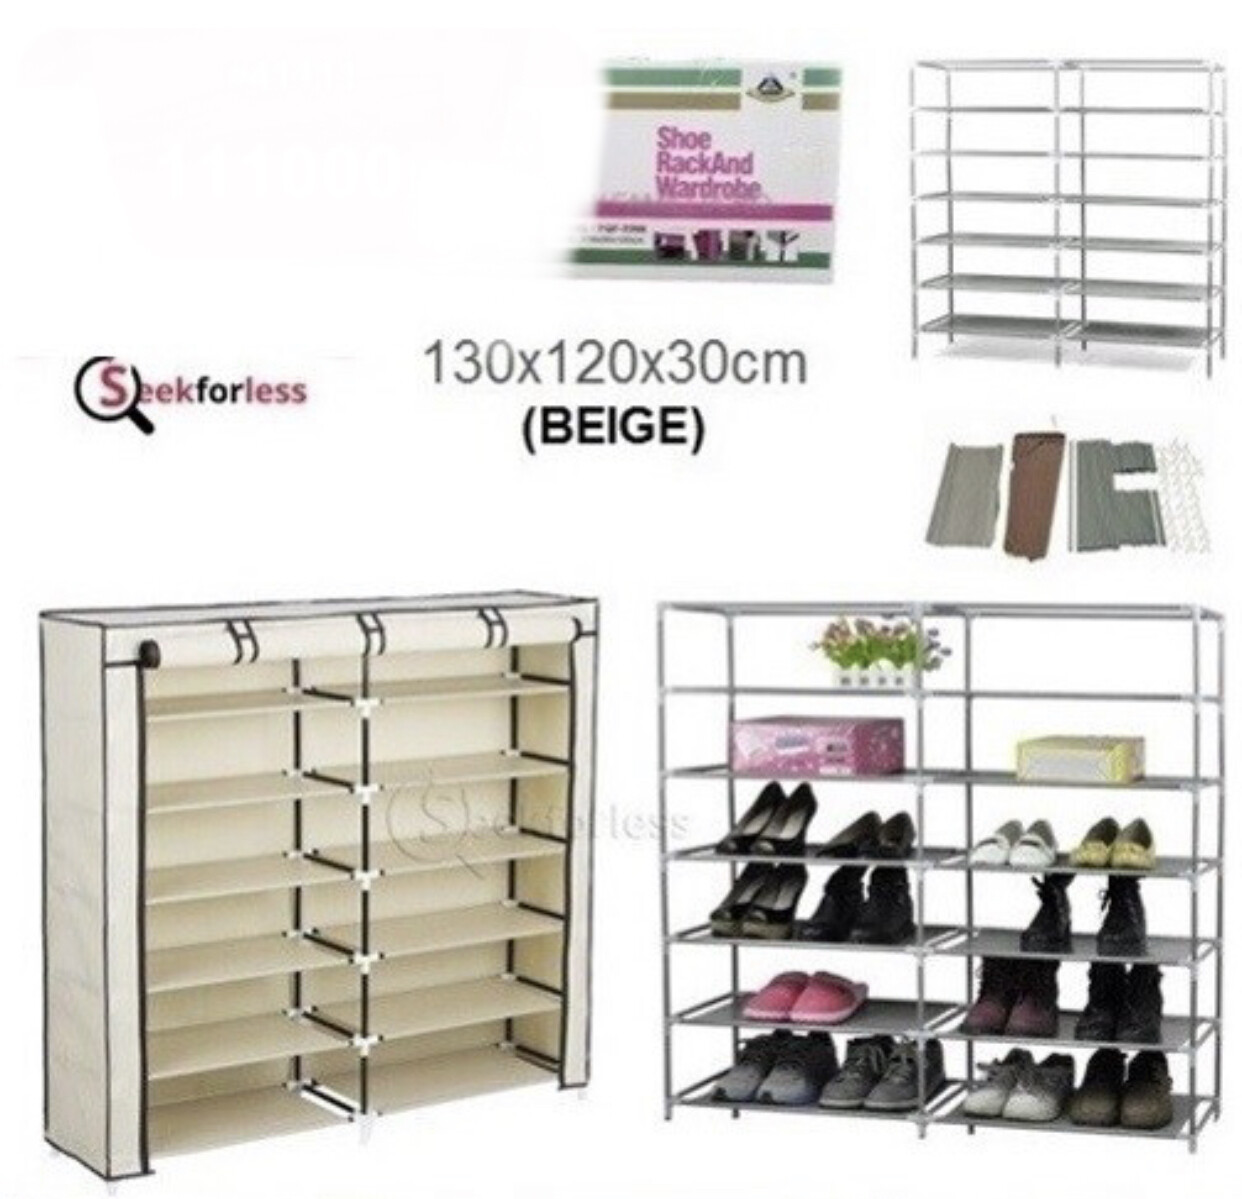 6-Tier Double Shoe Rack (BEIGE)